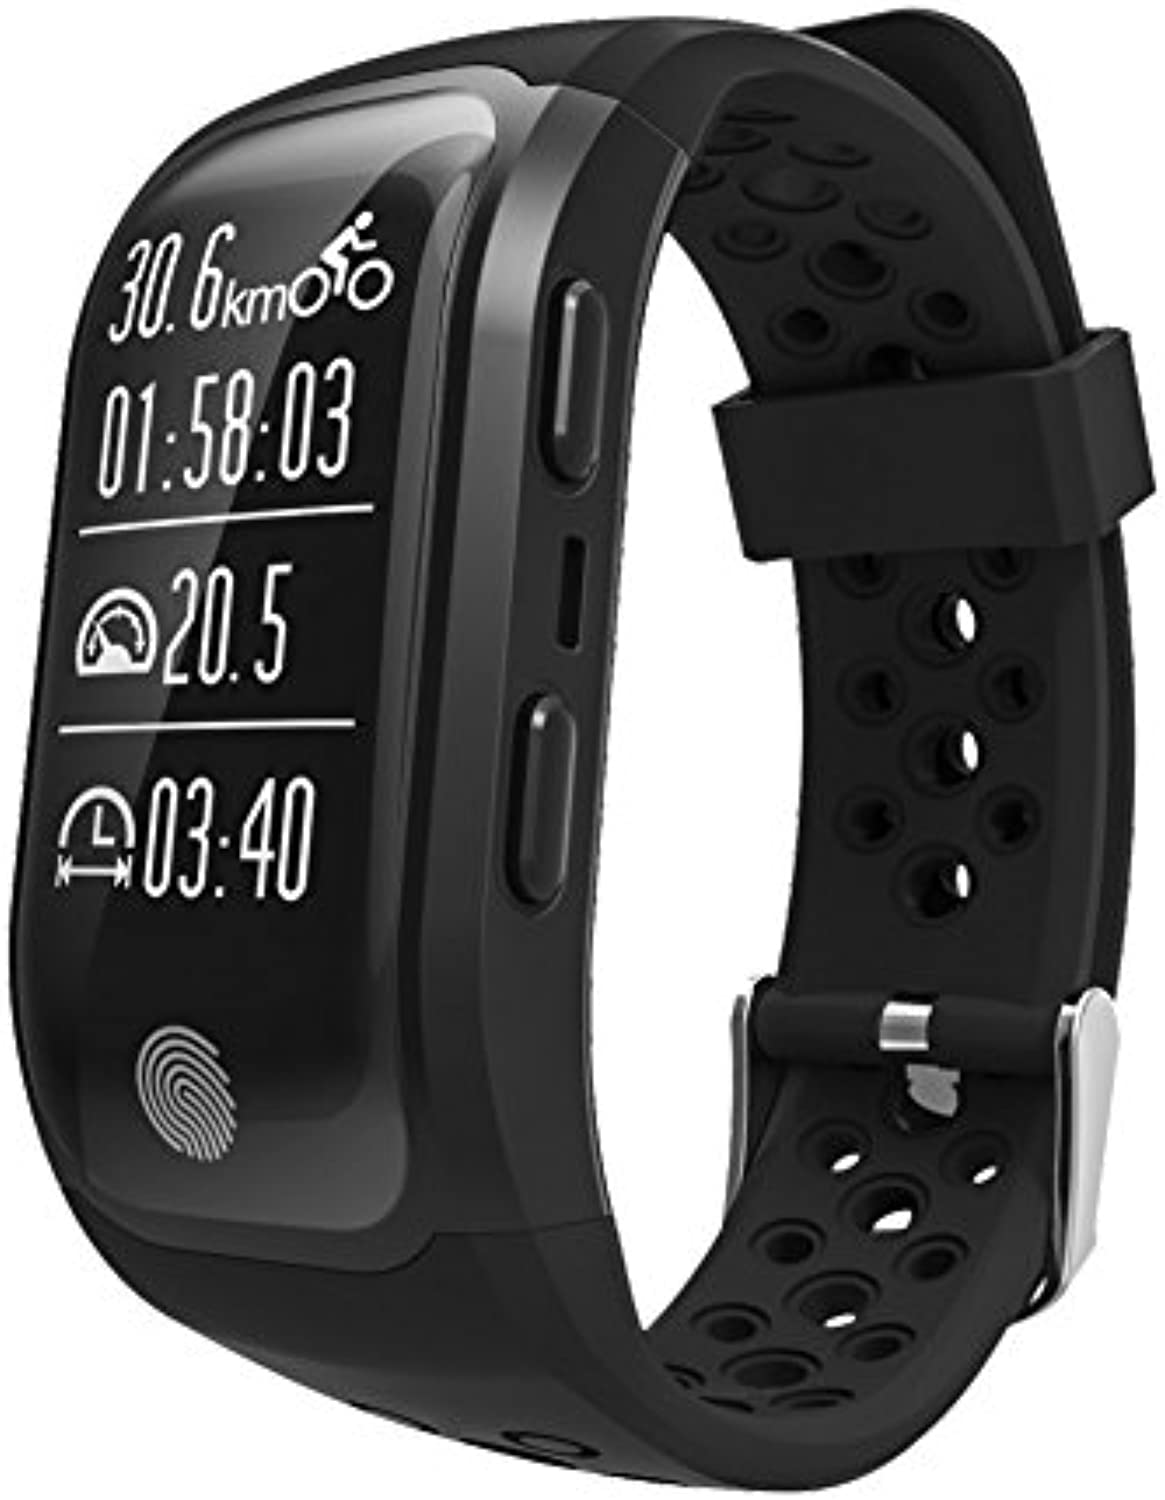 S908 GPS IP69 Waterproof Smart Belt Helps Improve Sleep Quality, Heart Rate superviseing, and Encourages and Supervises Your Own Exercise Smartwatch-Black